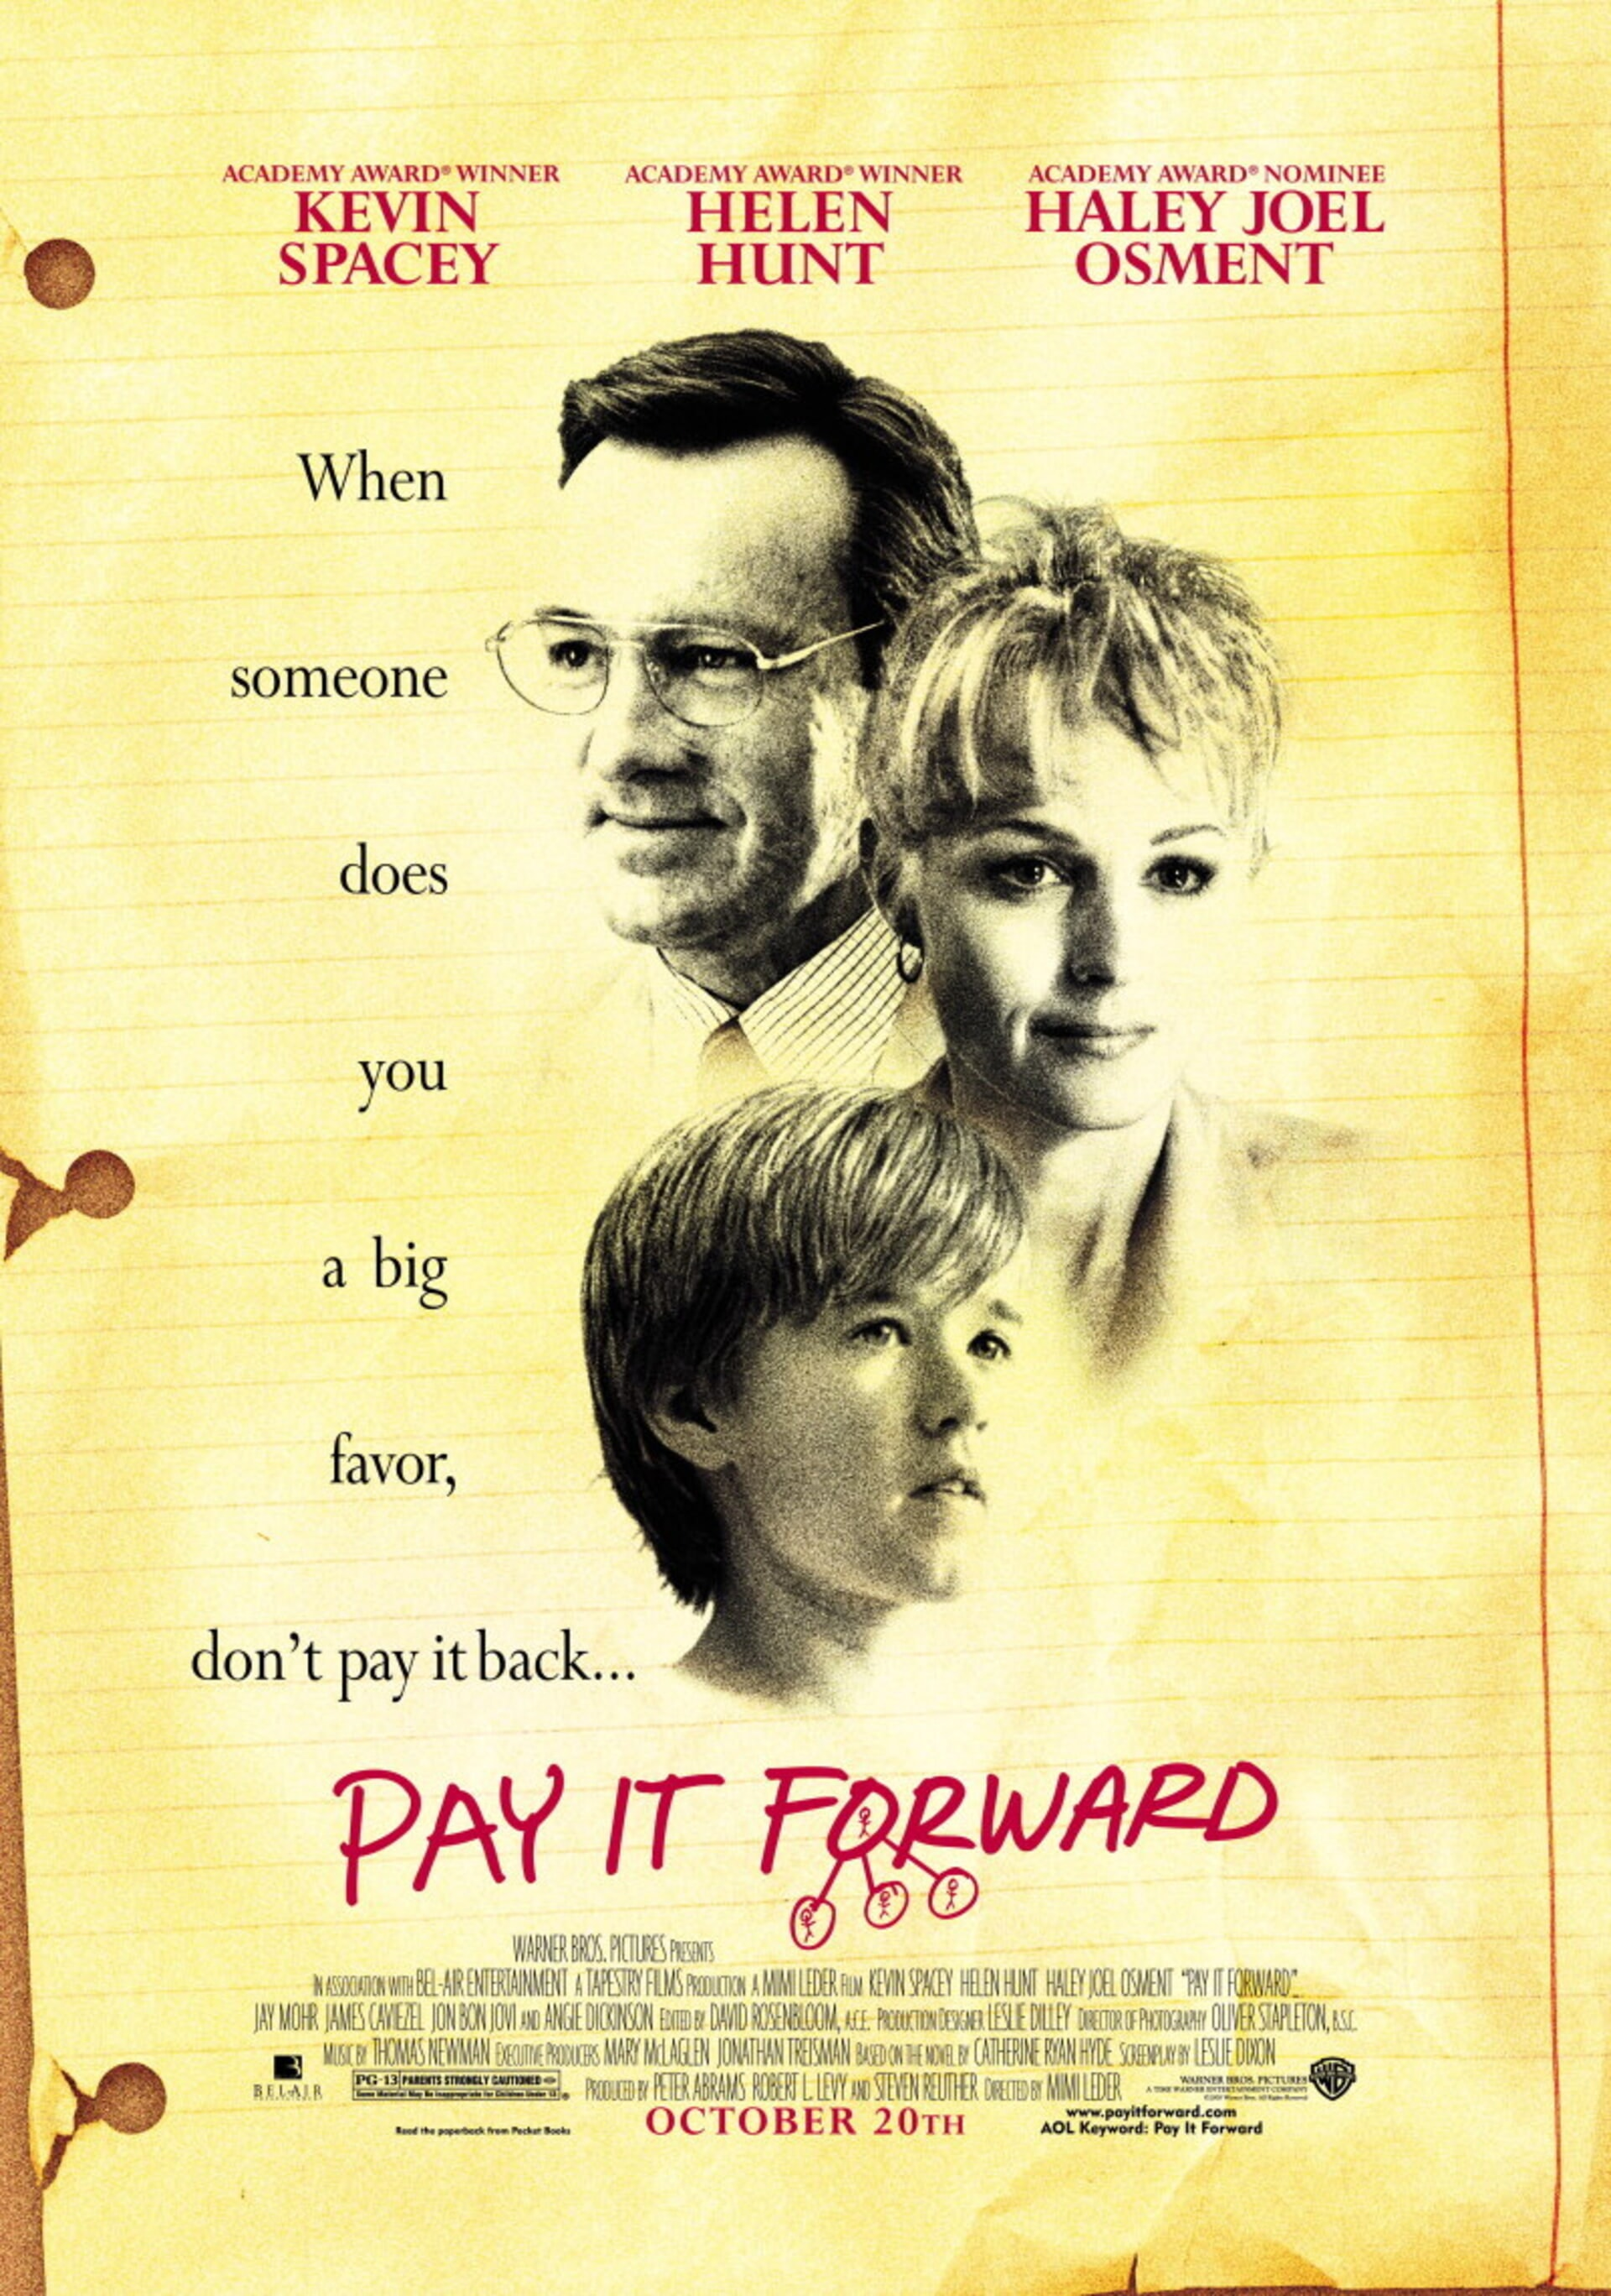 Pay It Forward - Poster 1